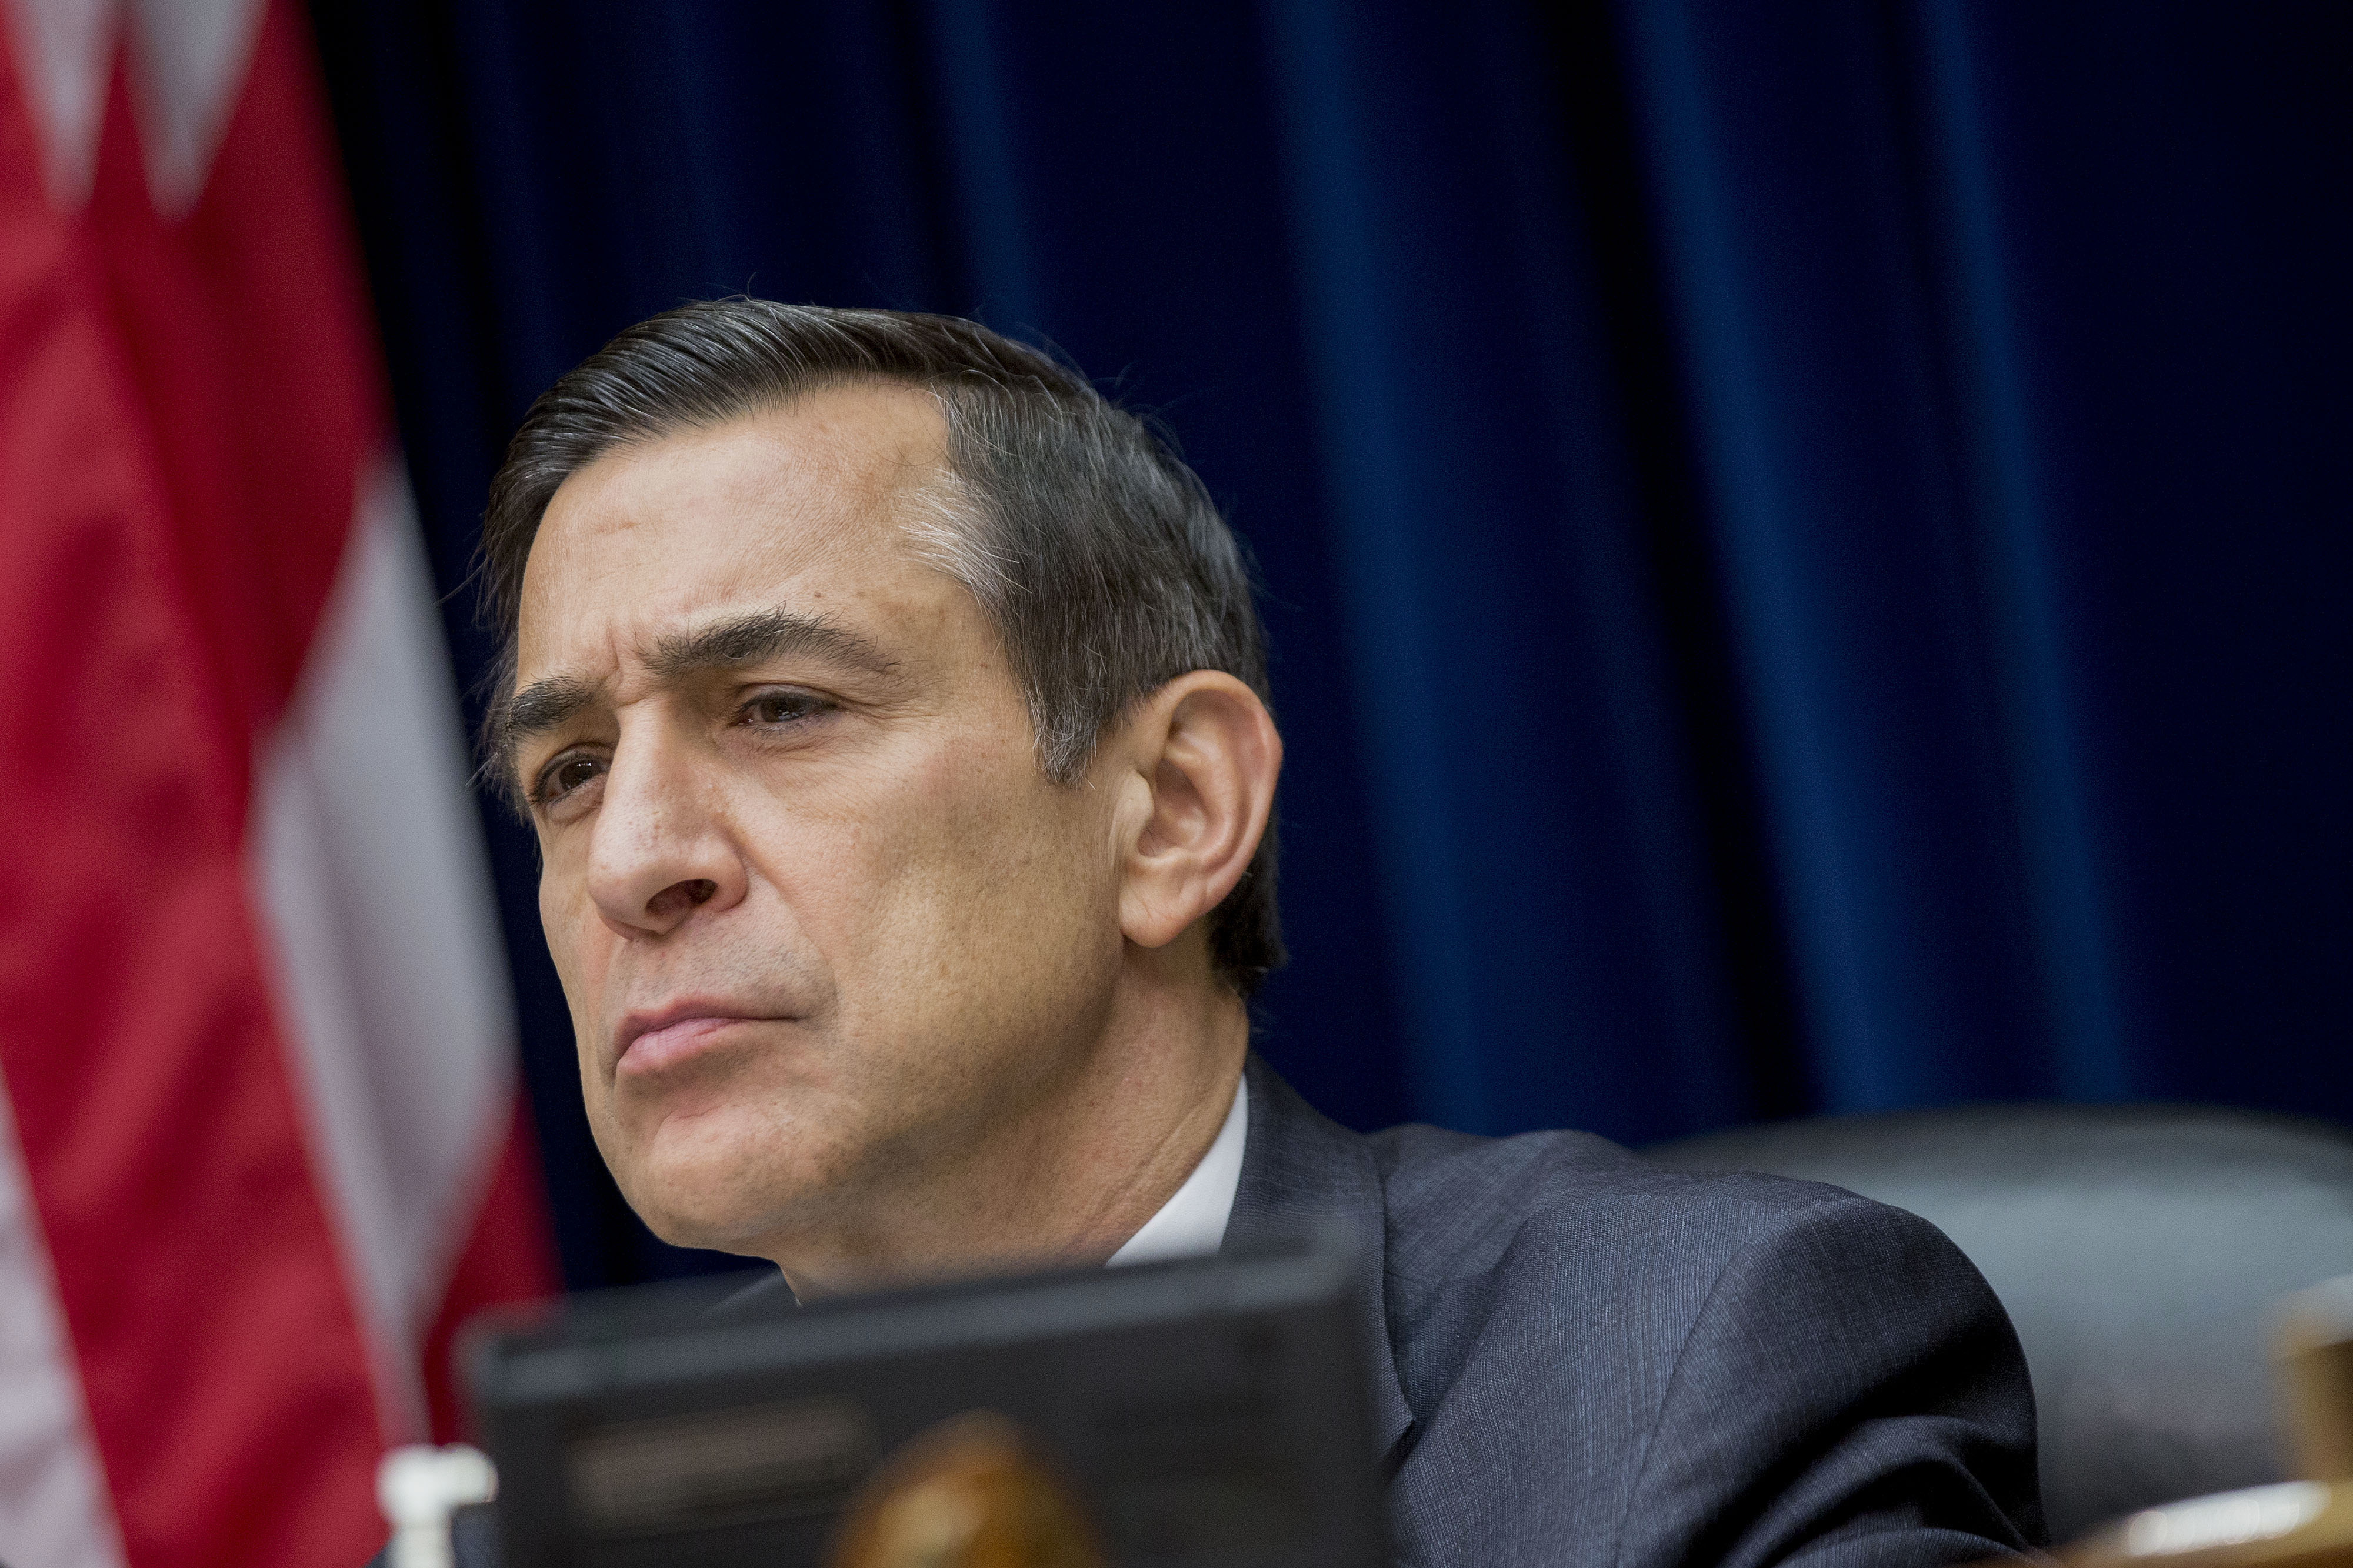 Representative Darrell Issa, a Republican from California and chairman of the House Oversight Committee, listens during a hearing with Jonathan Gruber, professor at Massachusetts Institute of Technology, not pictured, during a House Oversight Committee hearing in Washington, D.C., U.S., on Tuesday, Dec. 9, 2014. Gruber, the economist whose remarks on Obamacare have drawn criticism from Republicans, apologized to lawmakers for being Òglib, thoughtless and sometimes downright insulting.Ó Photographer: Andrew Harrer/Bloomberg *** Local Caption *** Darrell Issa